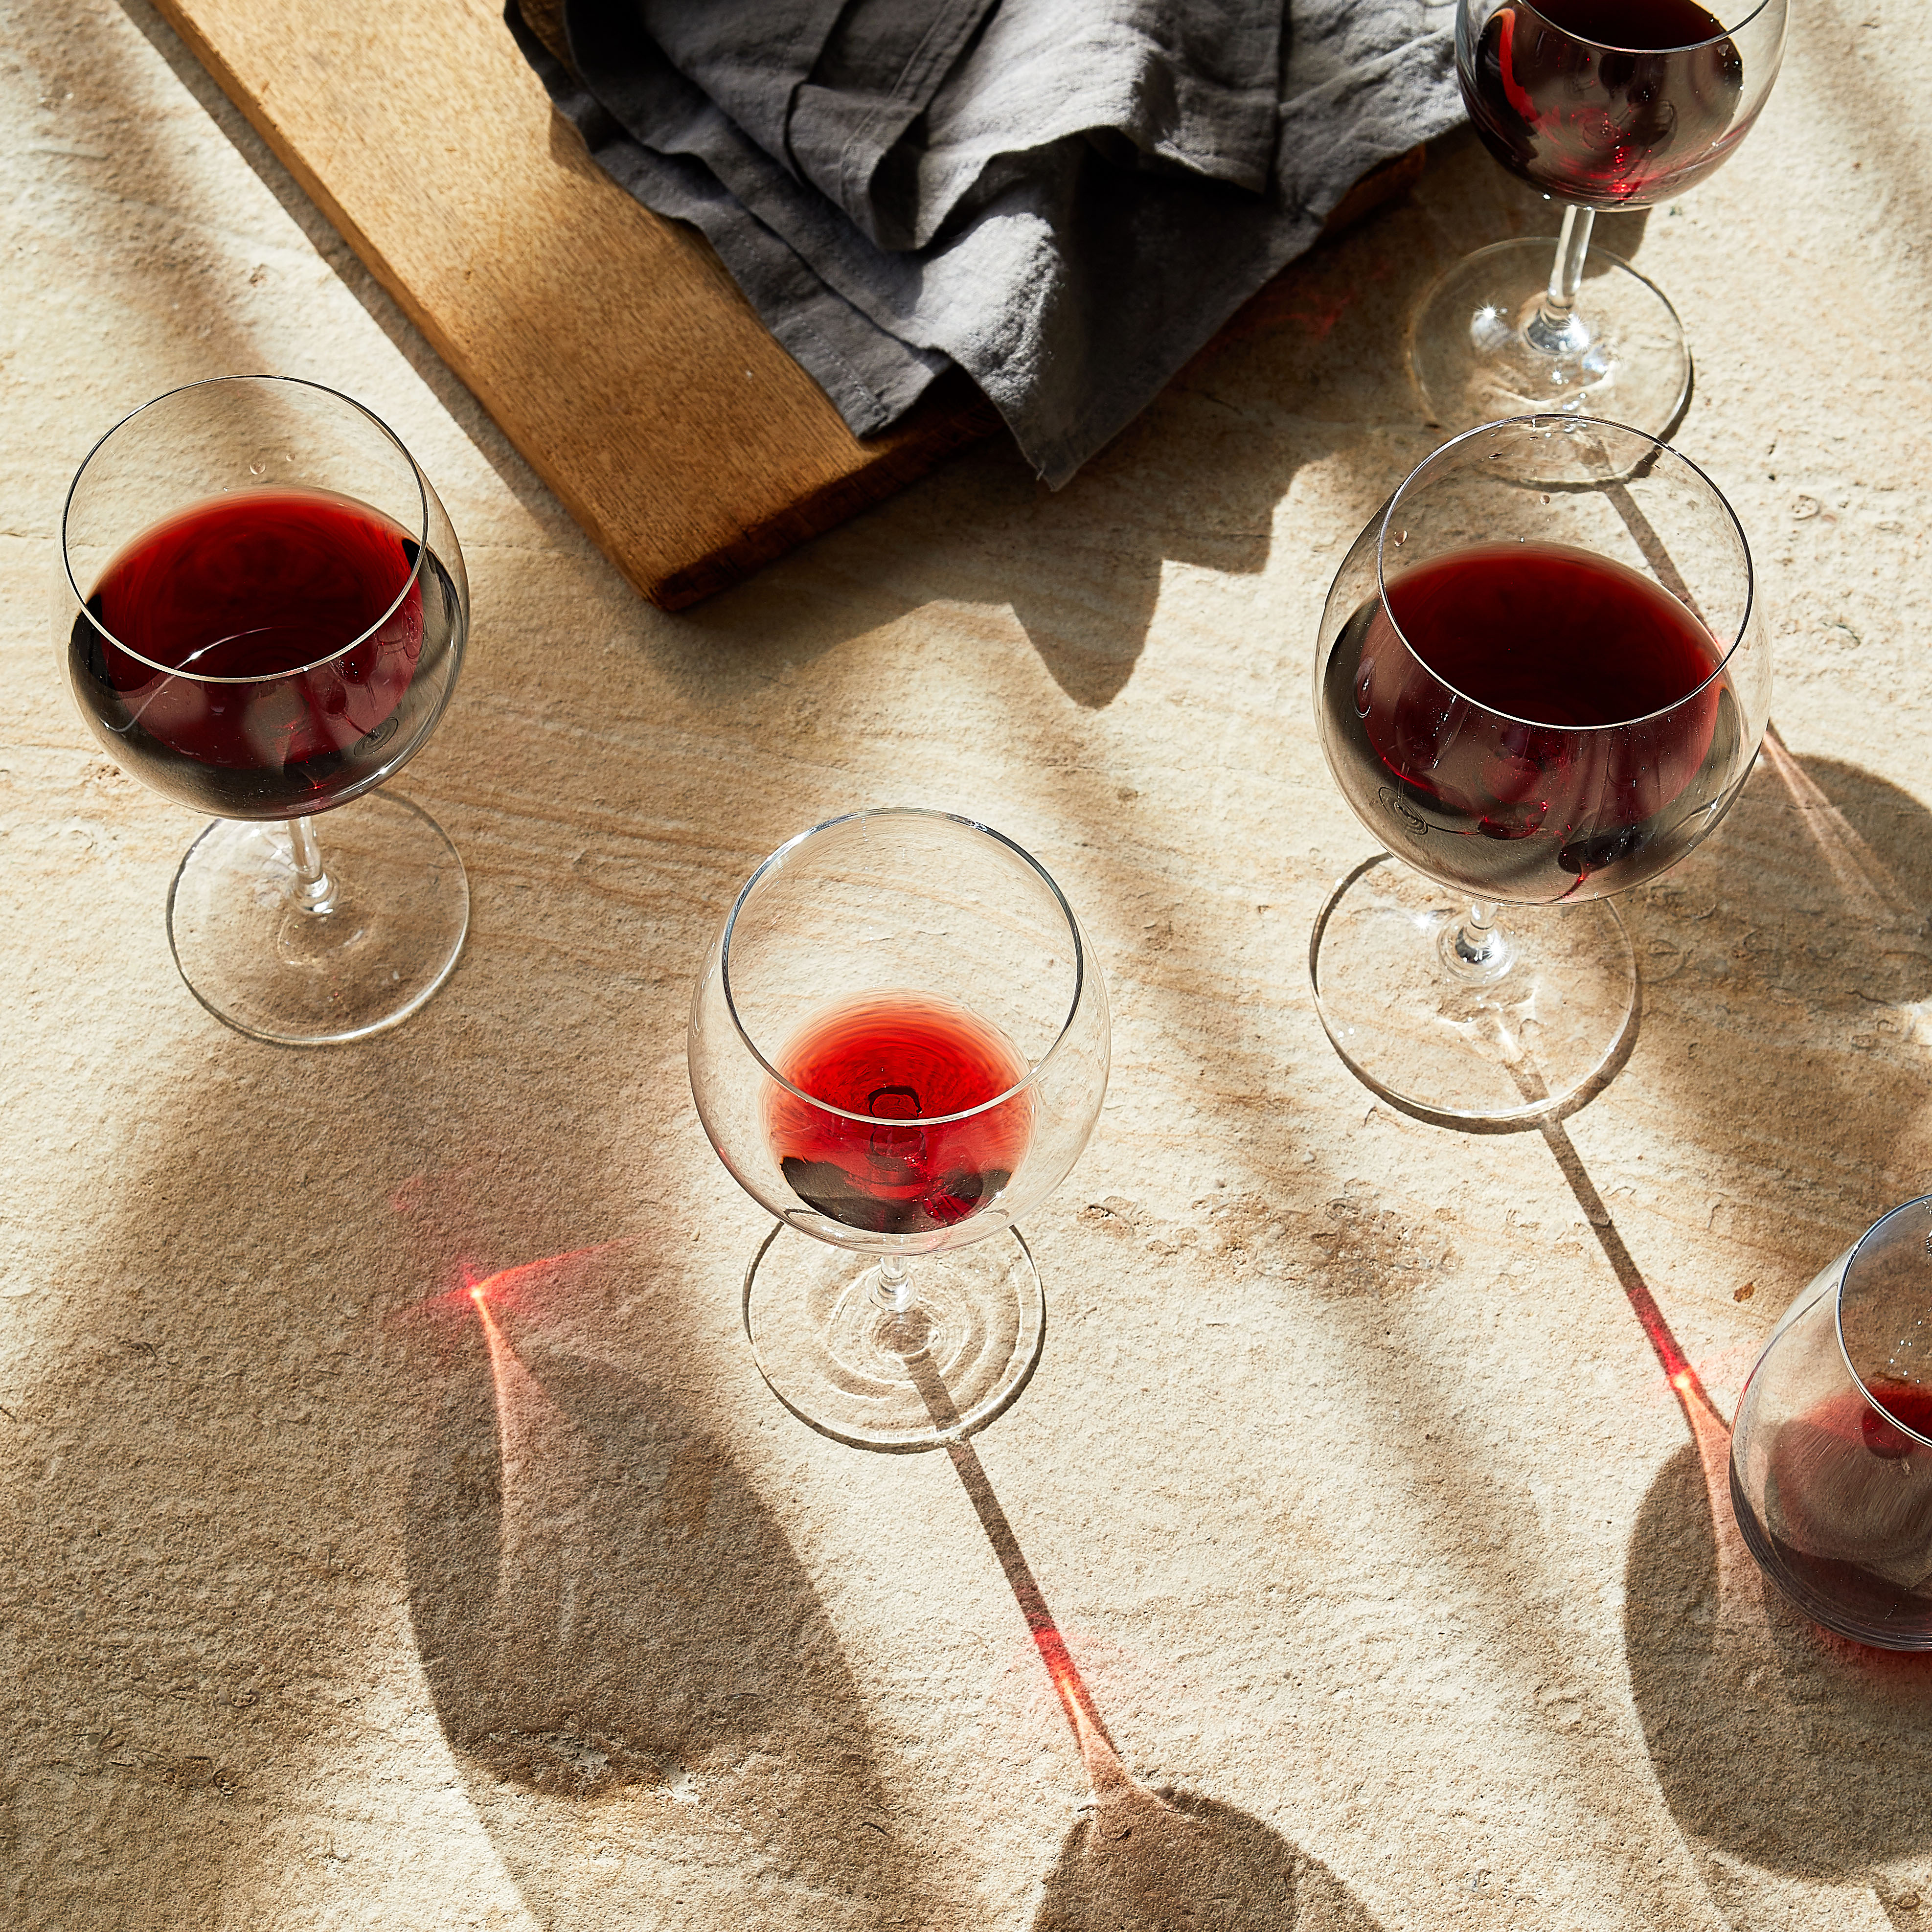 red wines in glasses on table